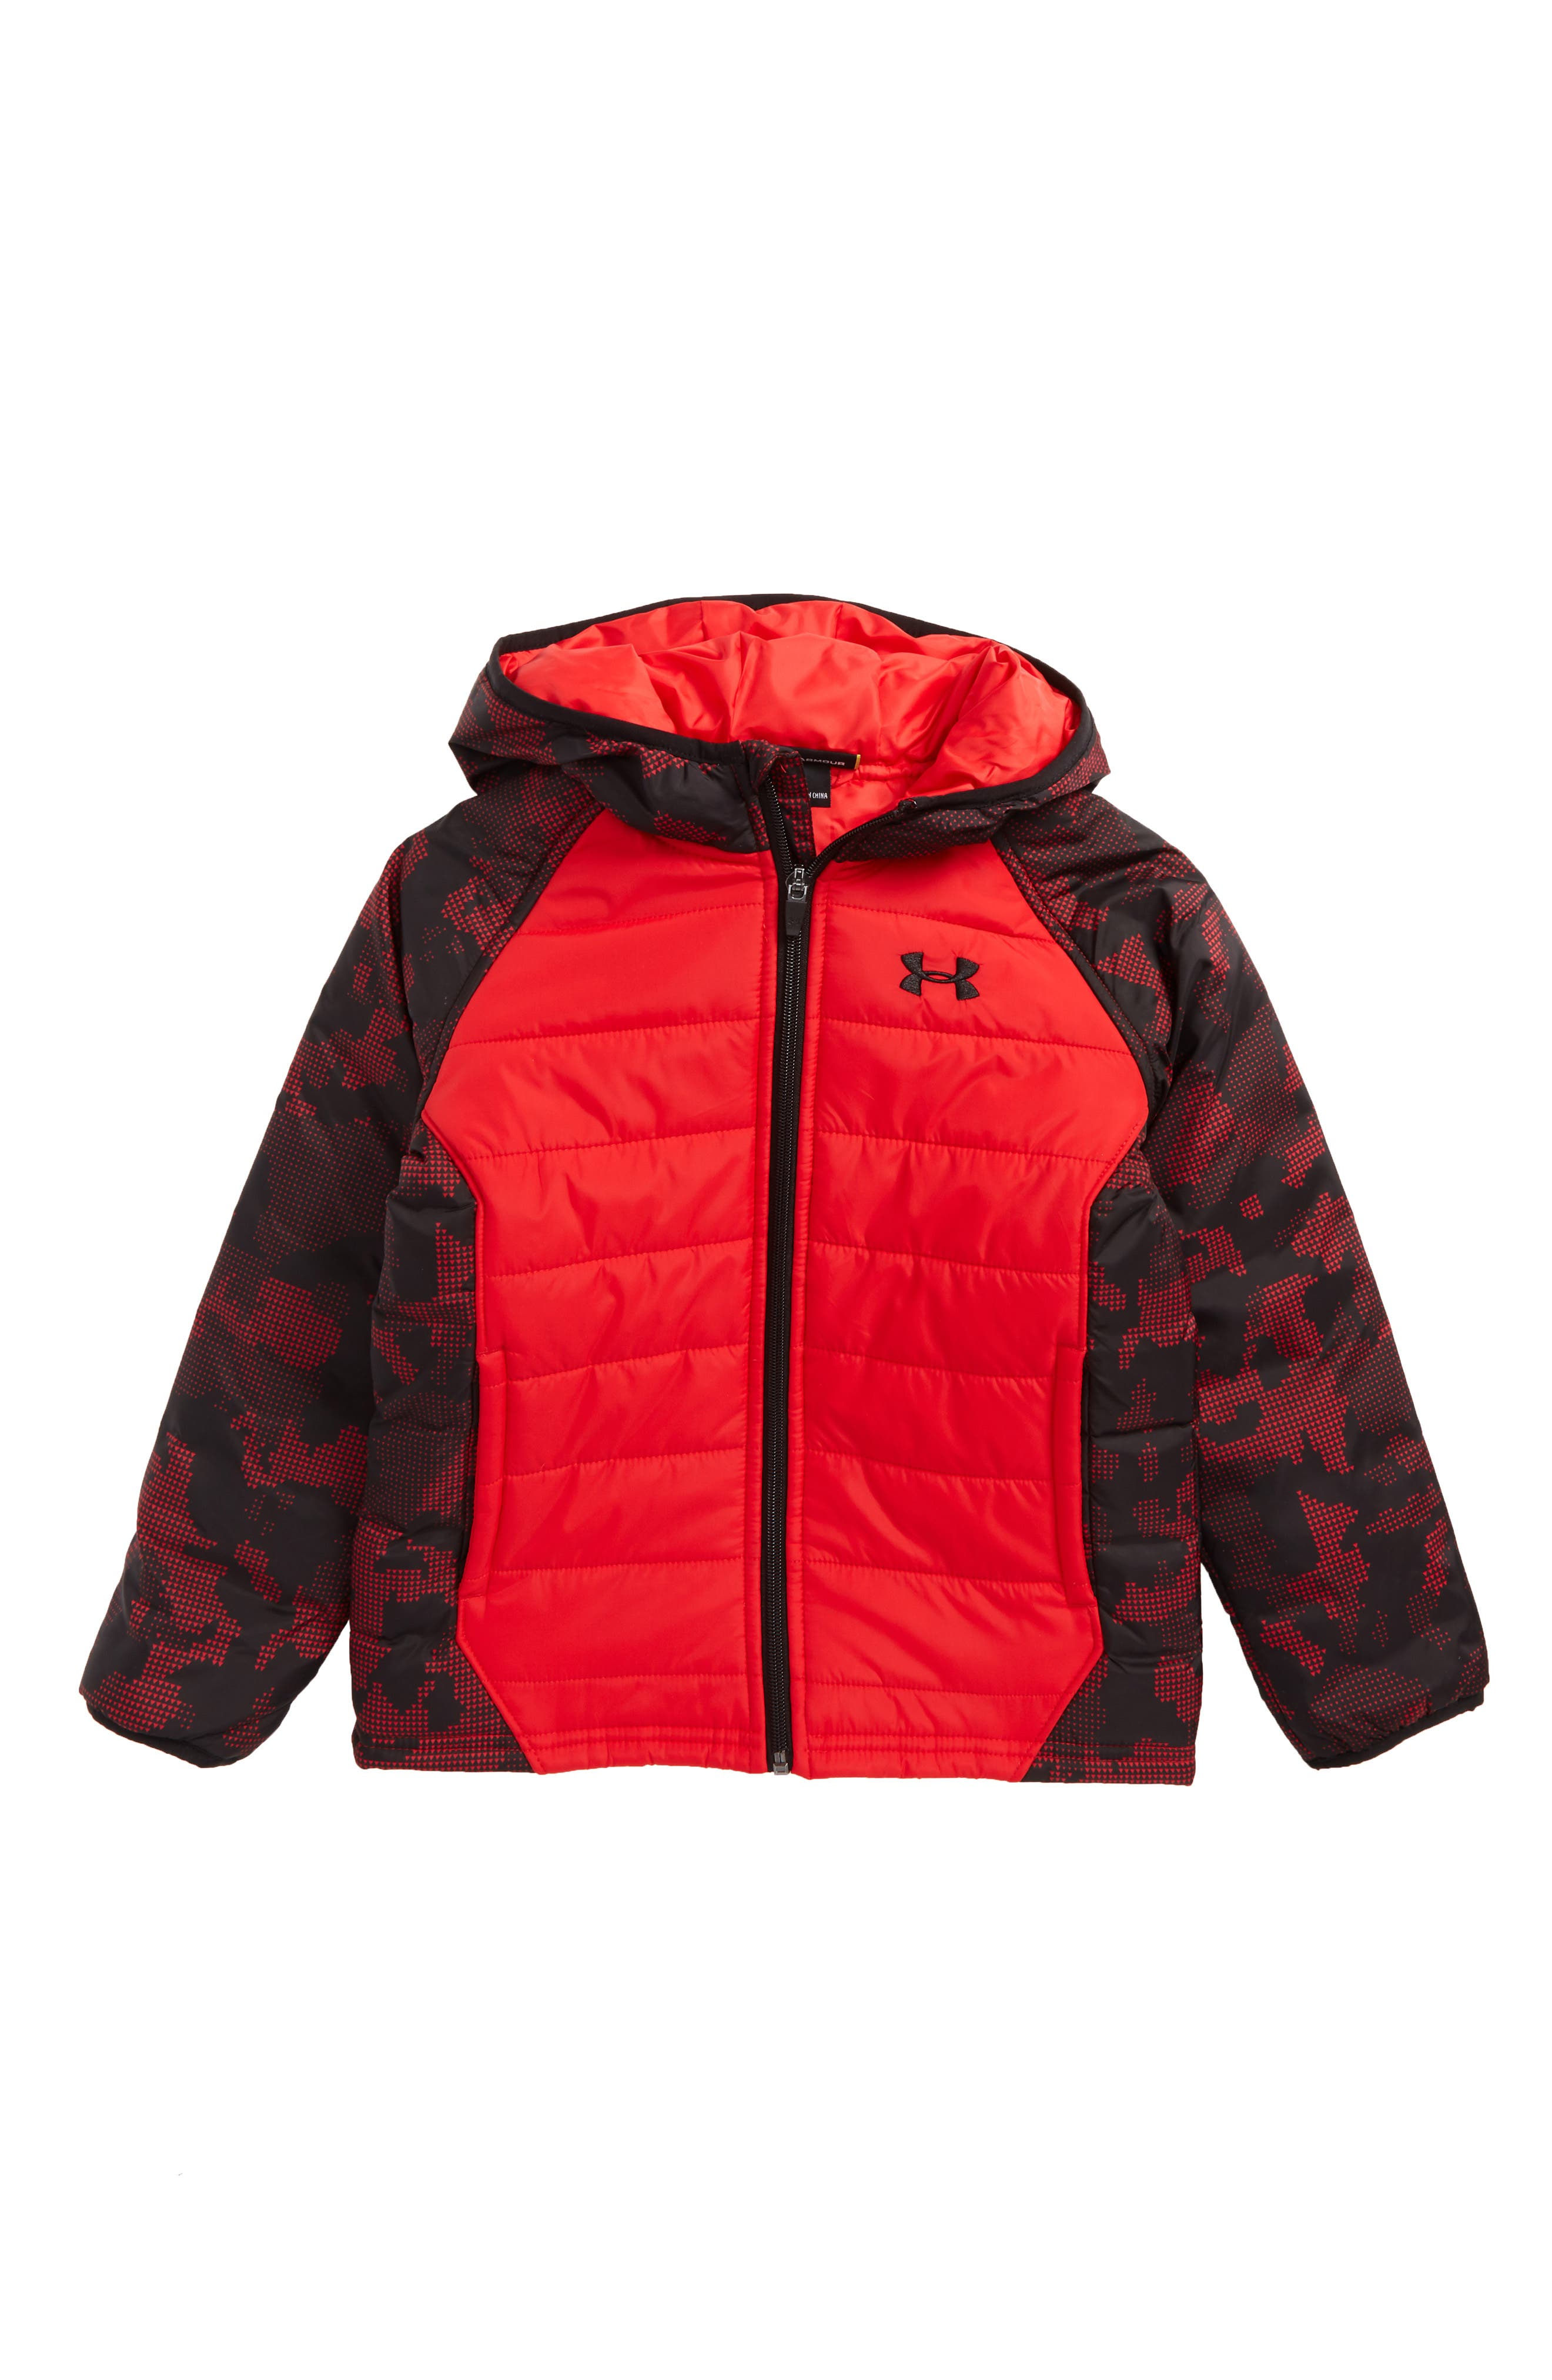 Werewolf Water Resistant Hooded Puffer Jacket,                         Main,                         color, Red